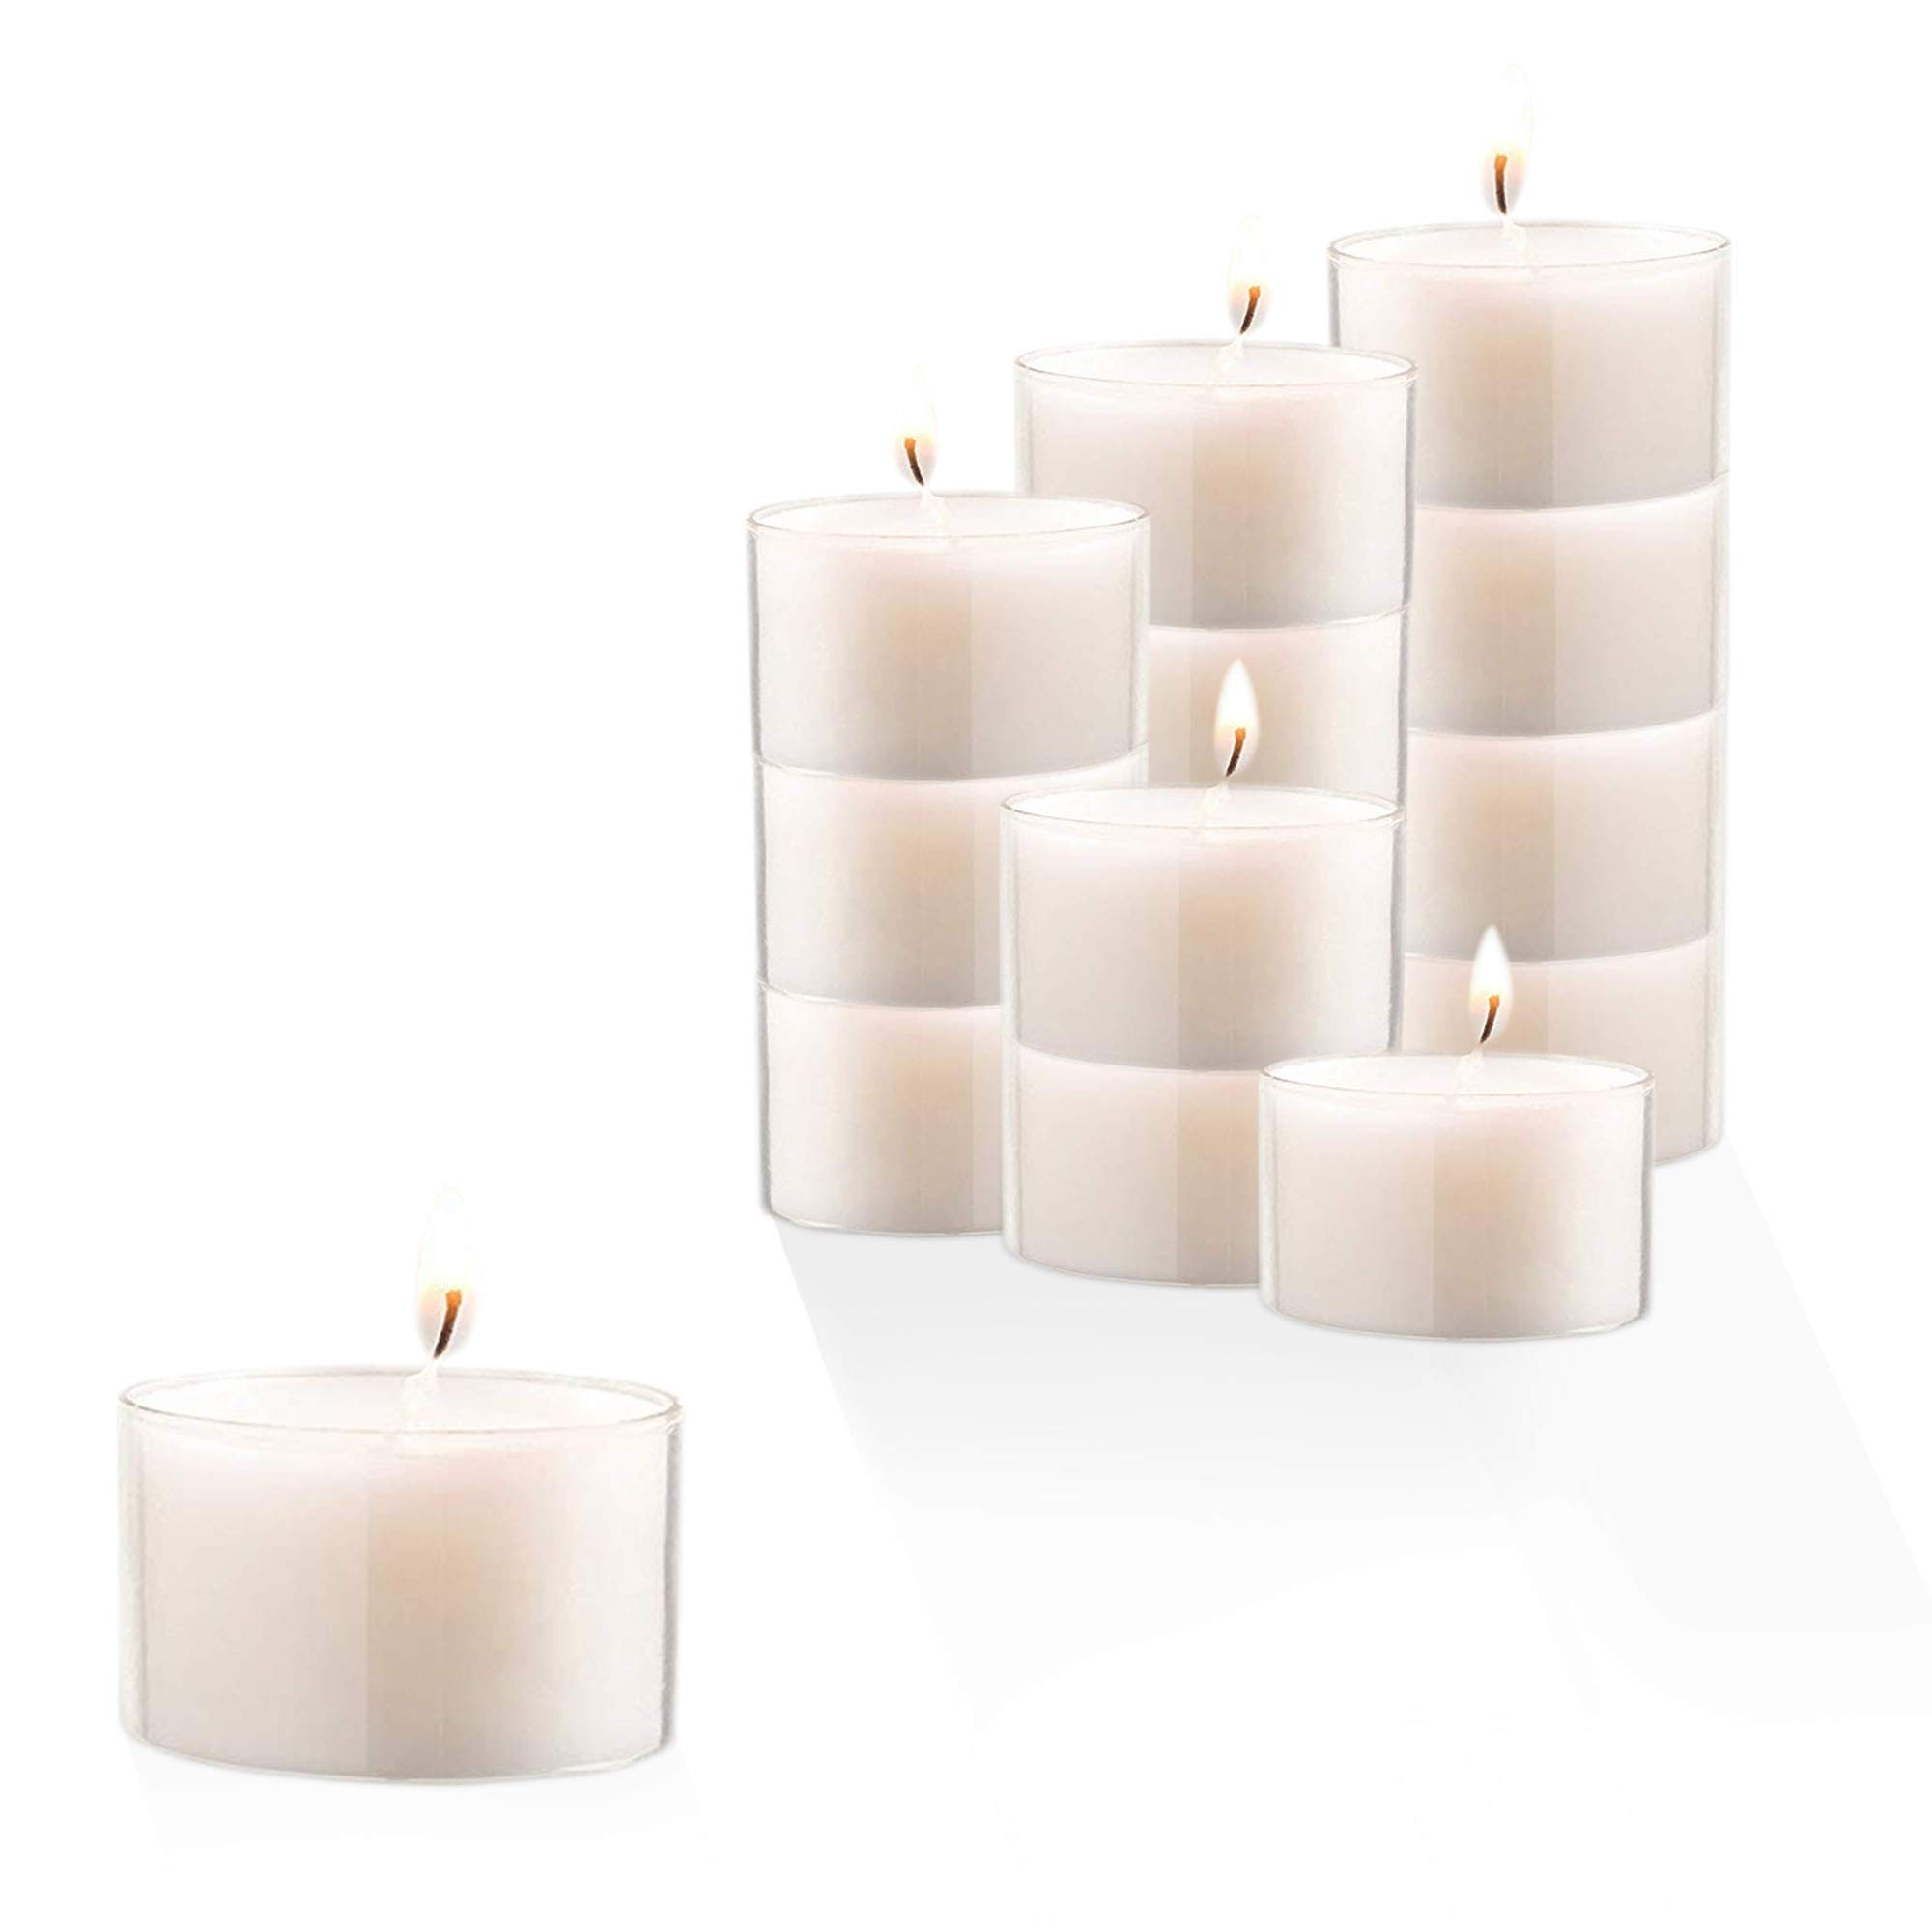 Stock Your Home 8-Hour Burning White Unscented Classic Tea Light Candles Great for Home, Weddings, Parties, Special Occasions & Holiday Decorations (Set of 30)